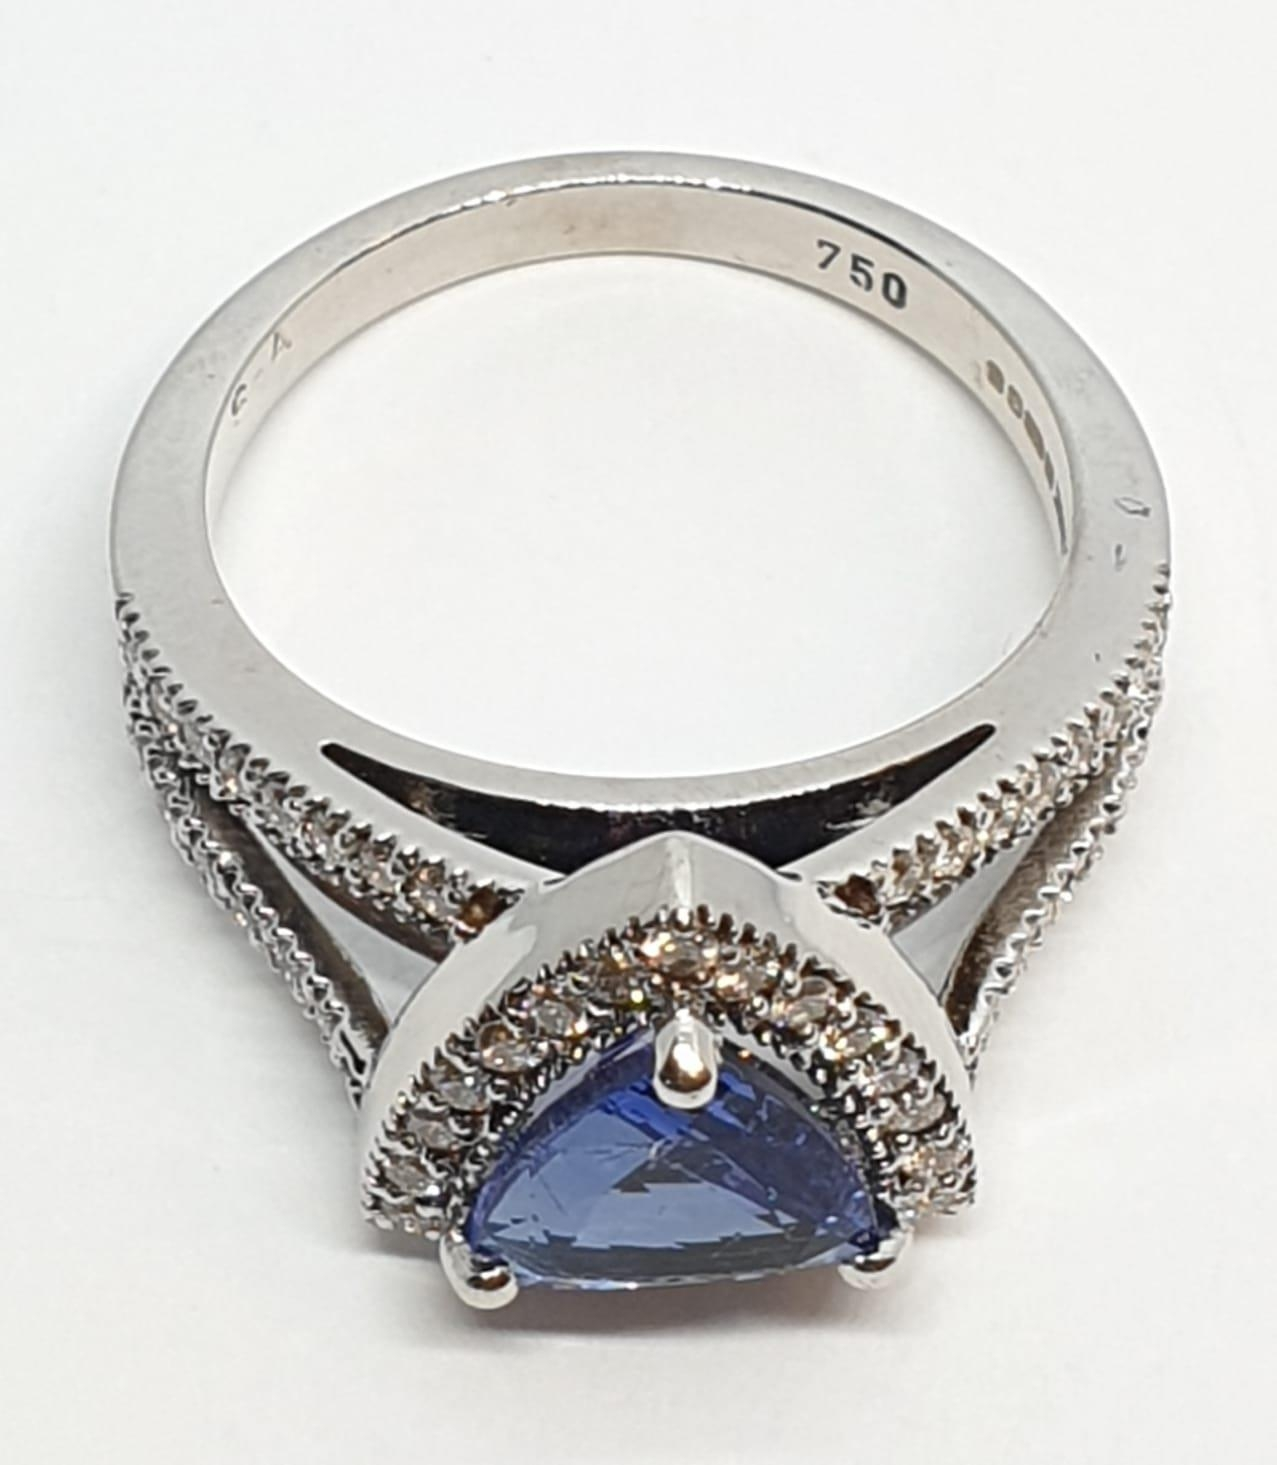 18CT WHITE GOLD RING WITH TRIANGULAR TANZANITE CENTRE AND DIAMONDS ON SHOULDERS, WEIGHT 7G AND - Image 5 of 10